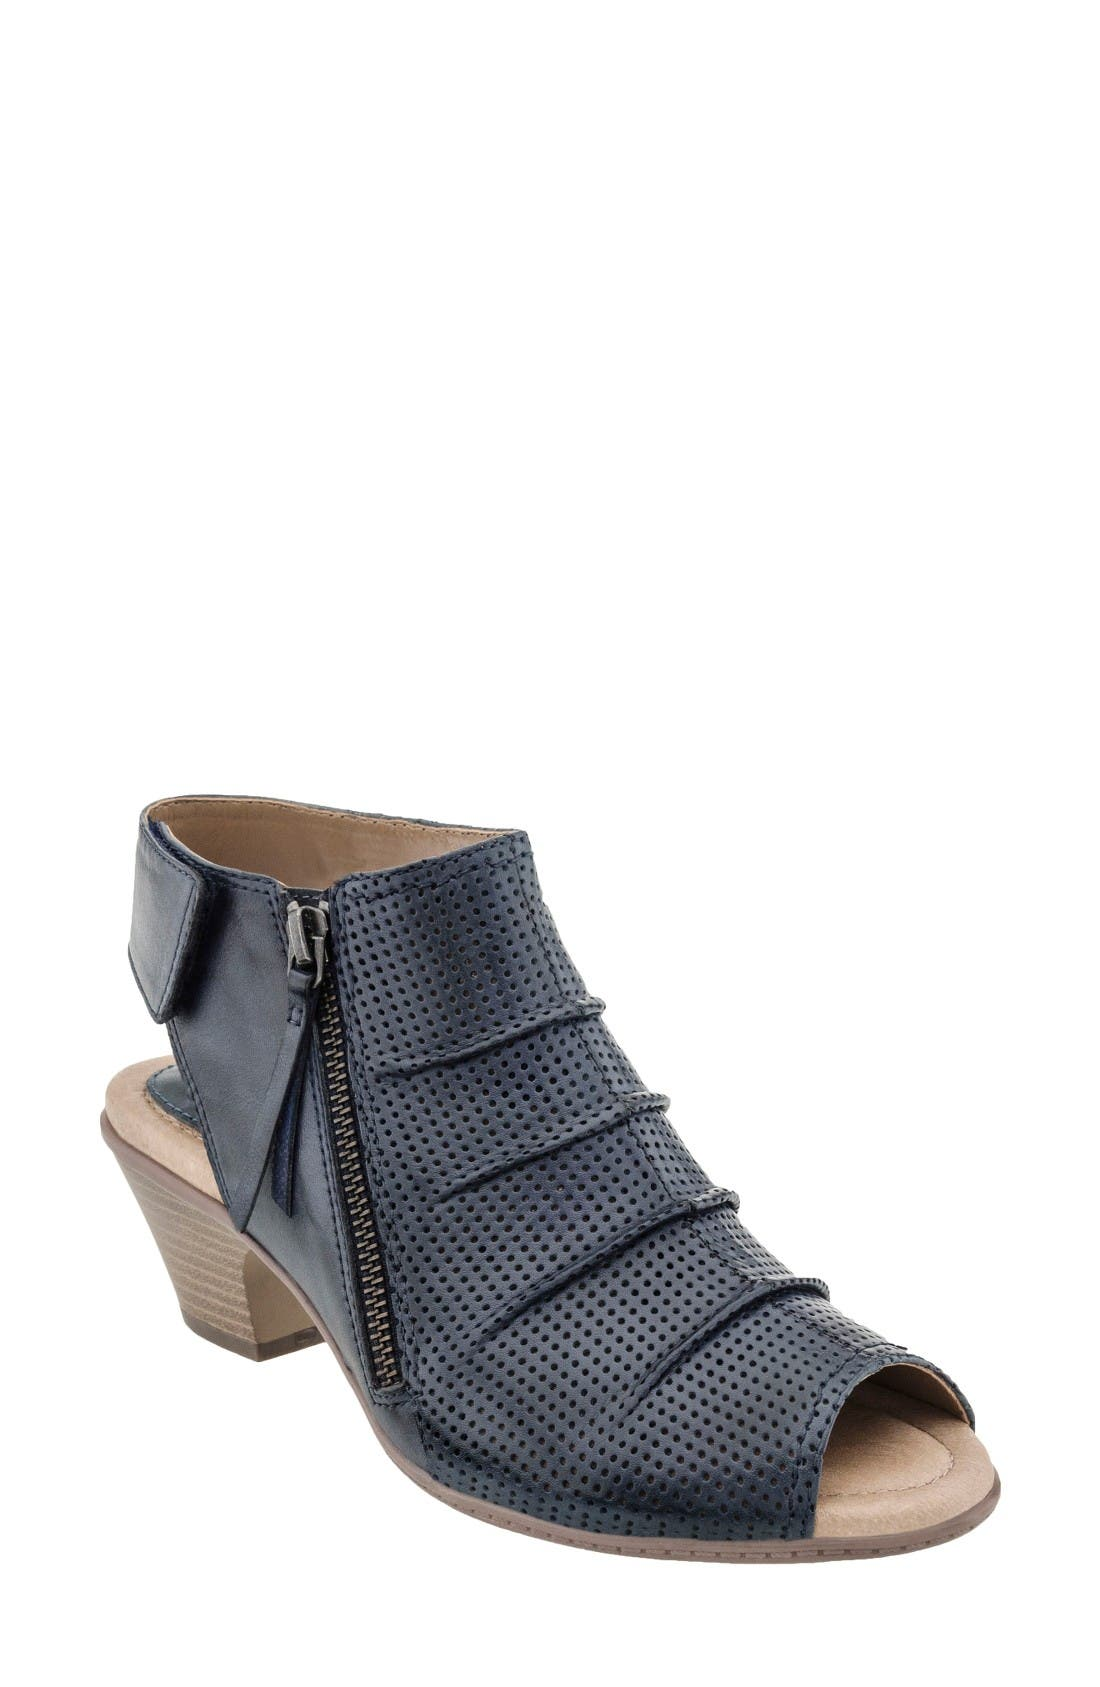 Hydra Sandal,                             Main thumbnail 1, color,                             Admiral Blue Soft Leather